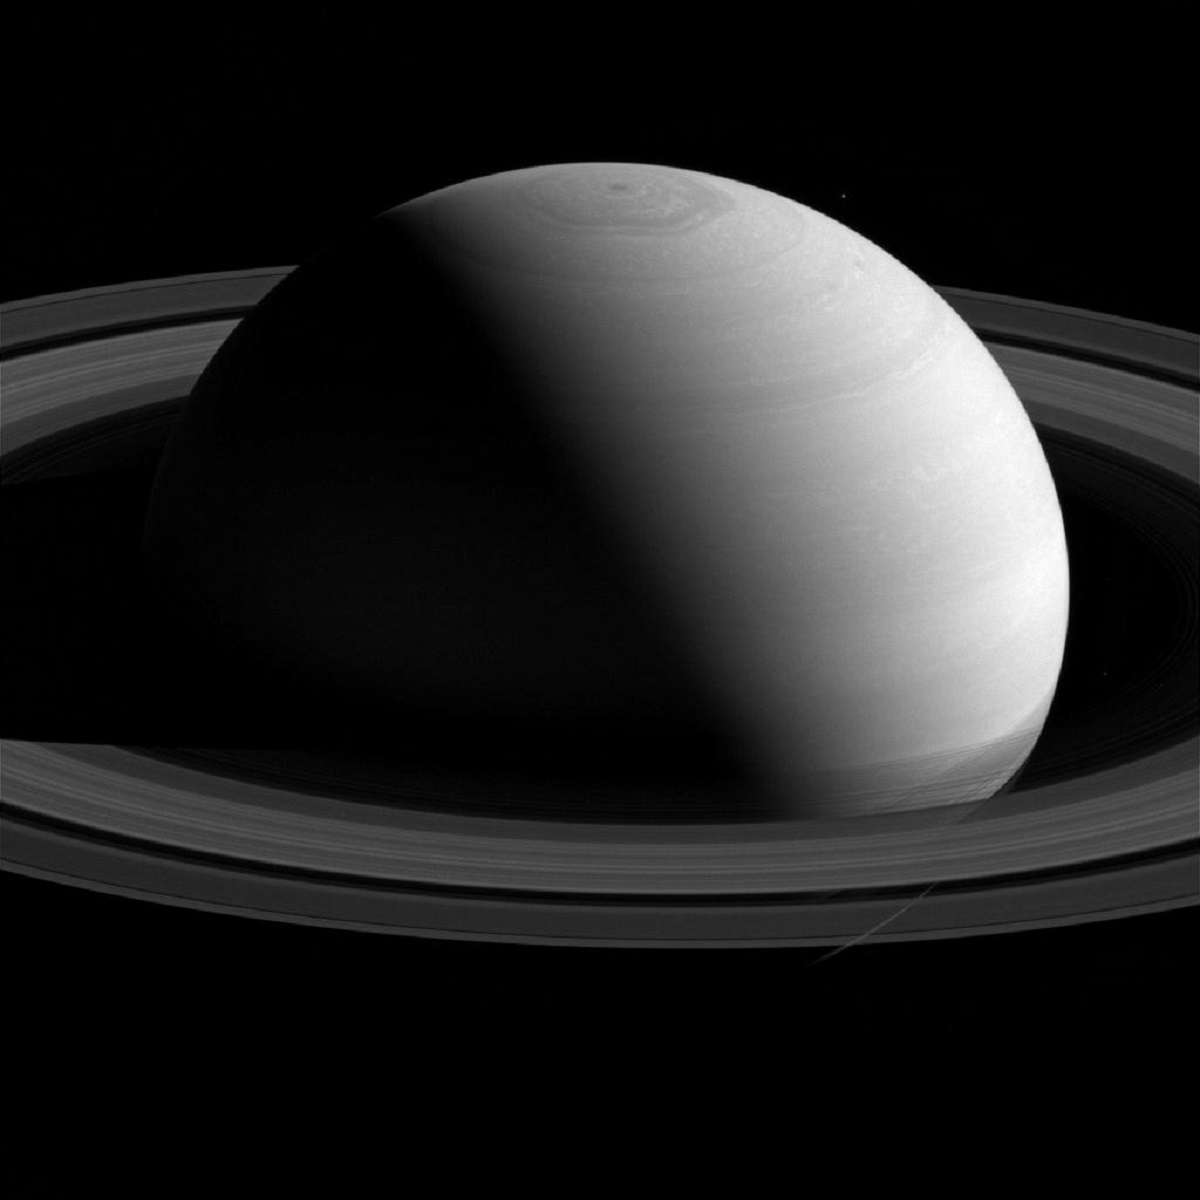 Saturn looks peaceful from a distance - NASA photos on Silver Magazine www.silvermagazine.co.uk